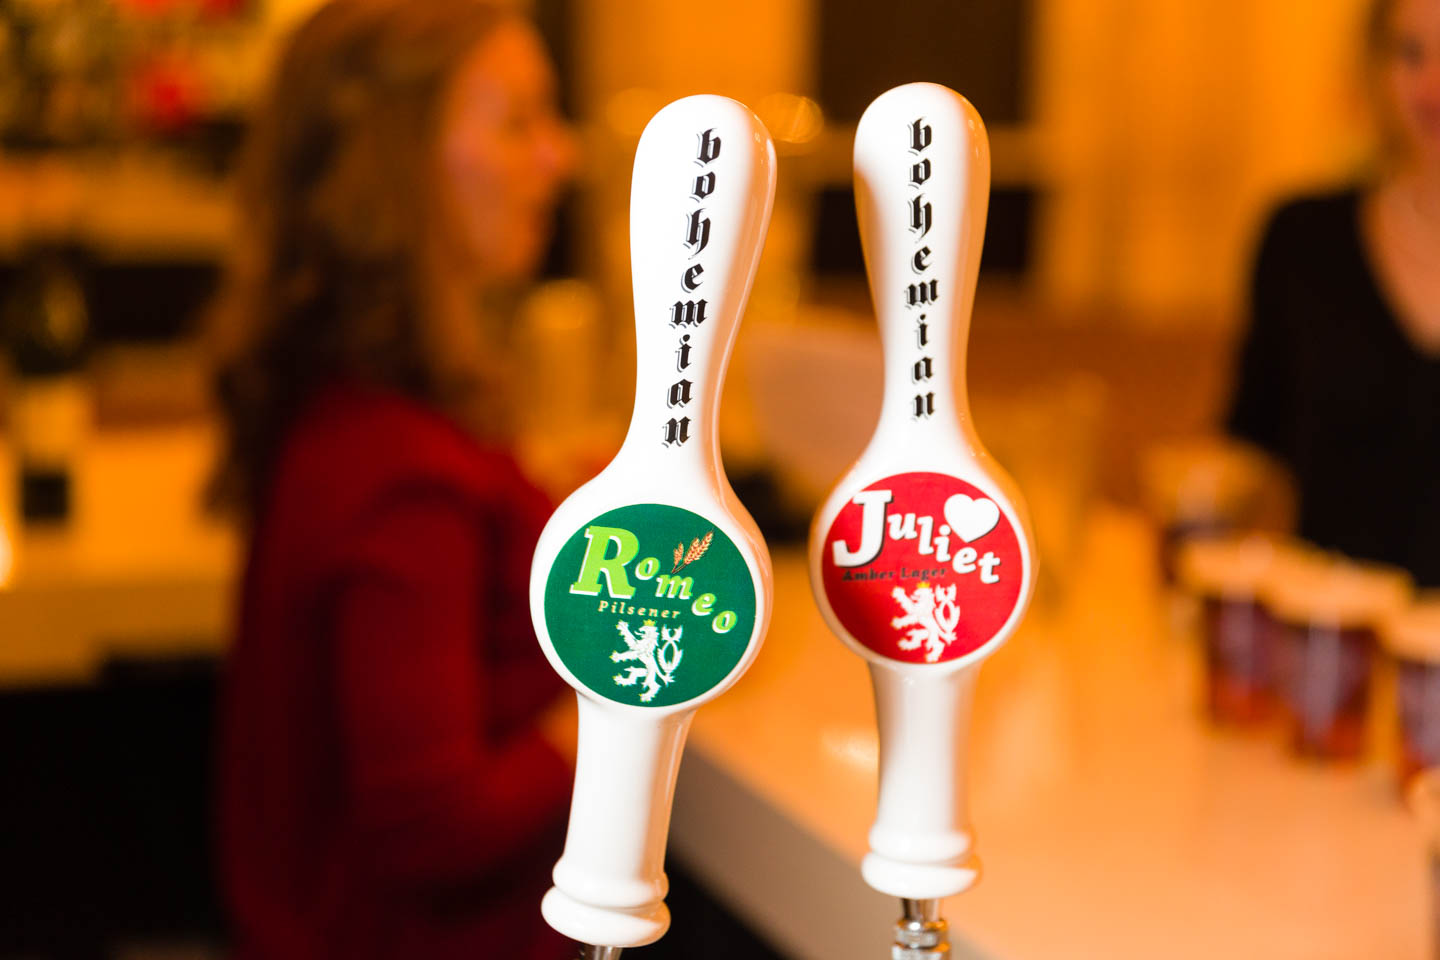 Romeo & Juliet themed beers taps